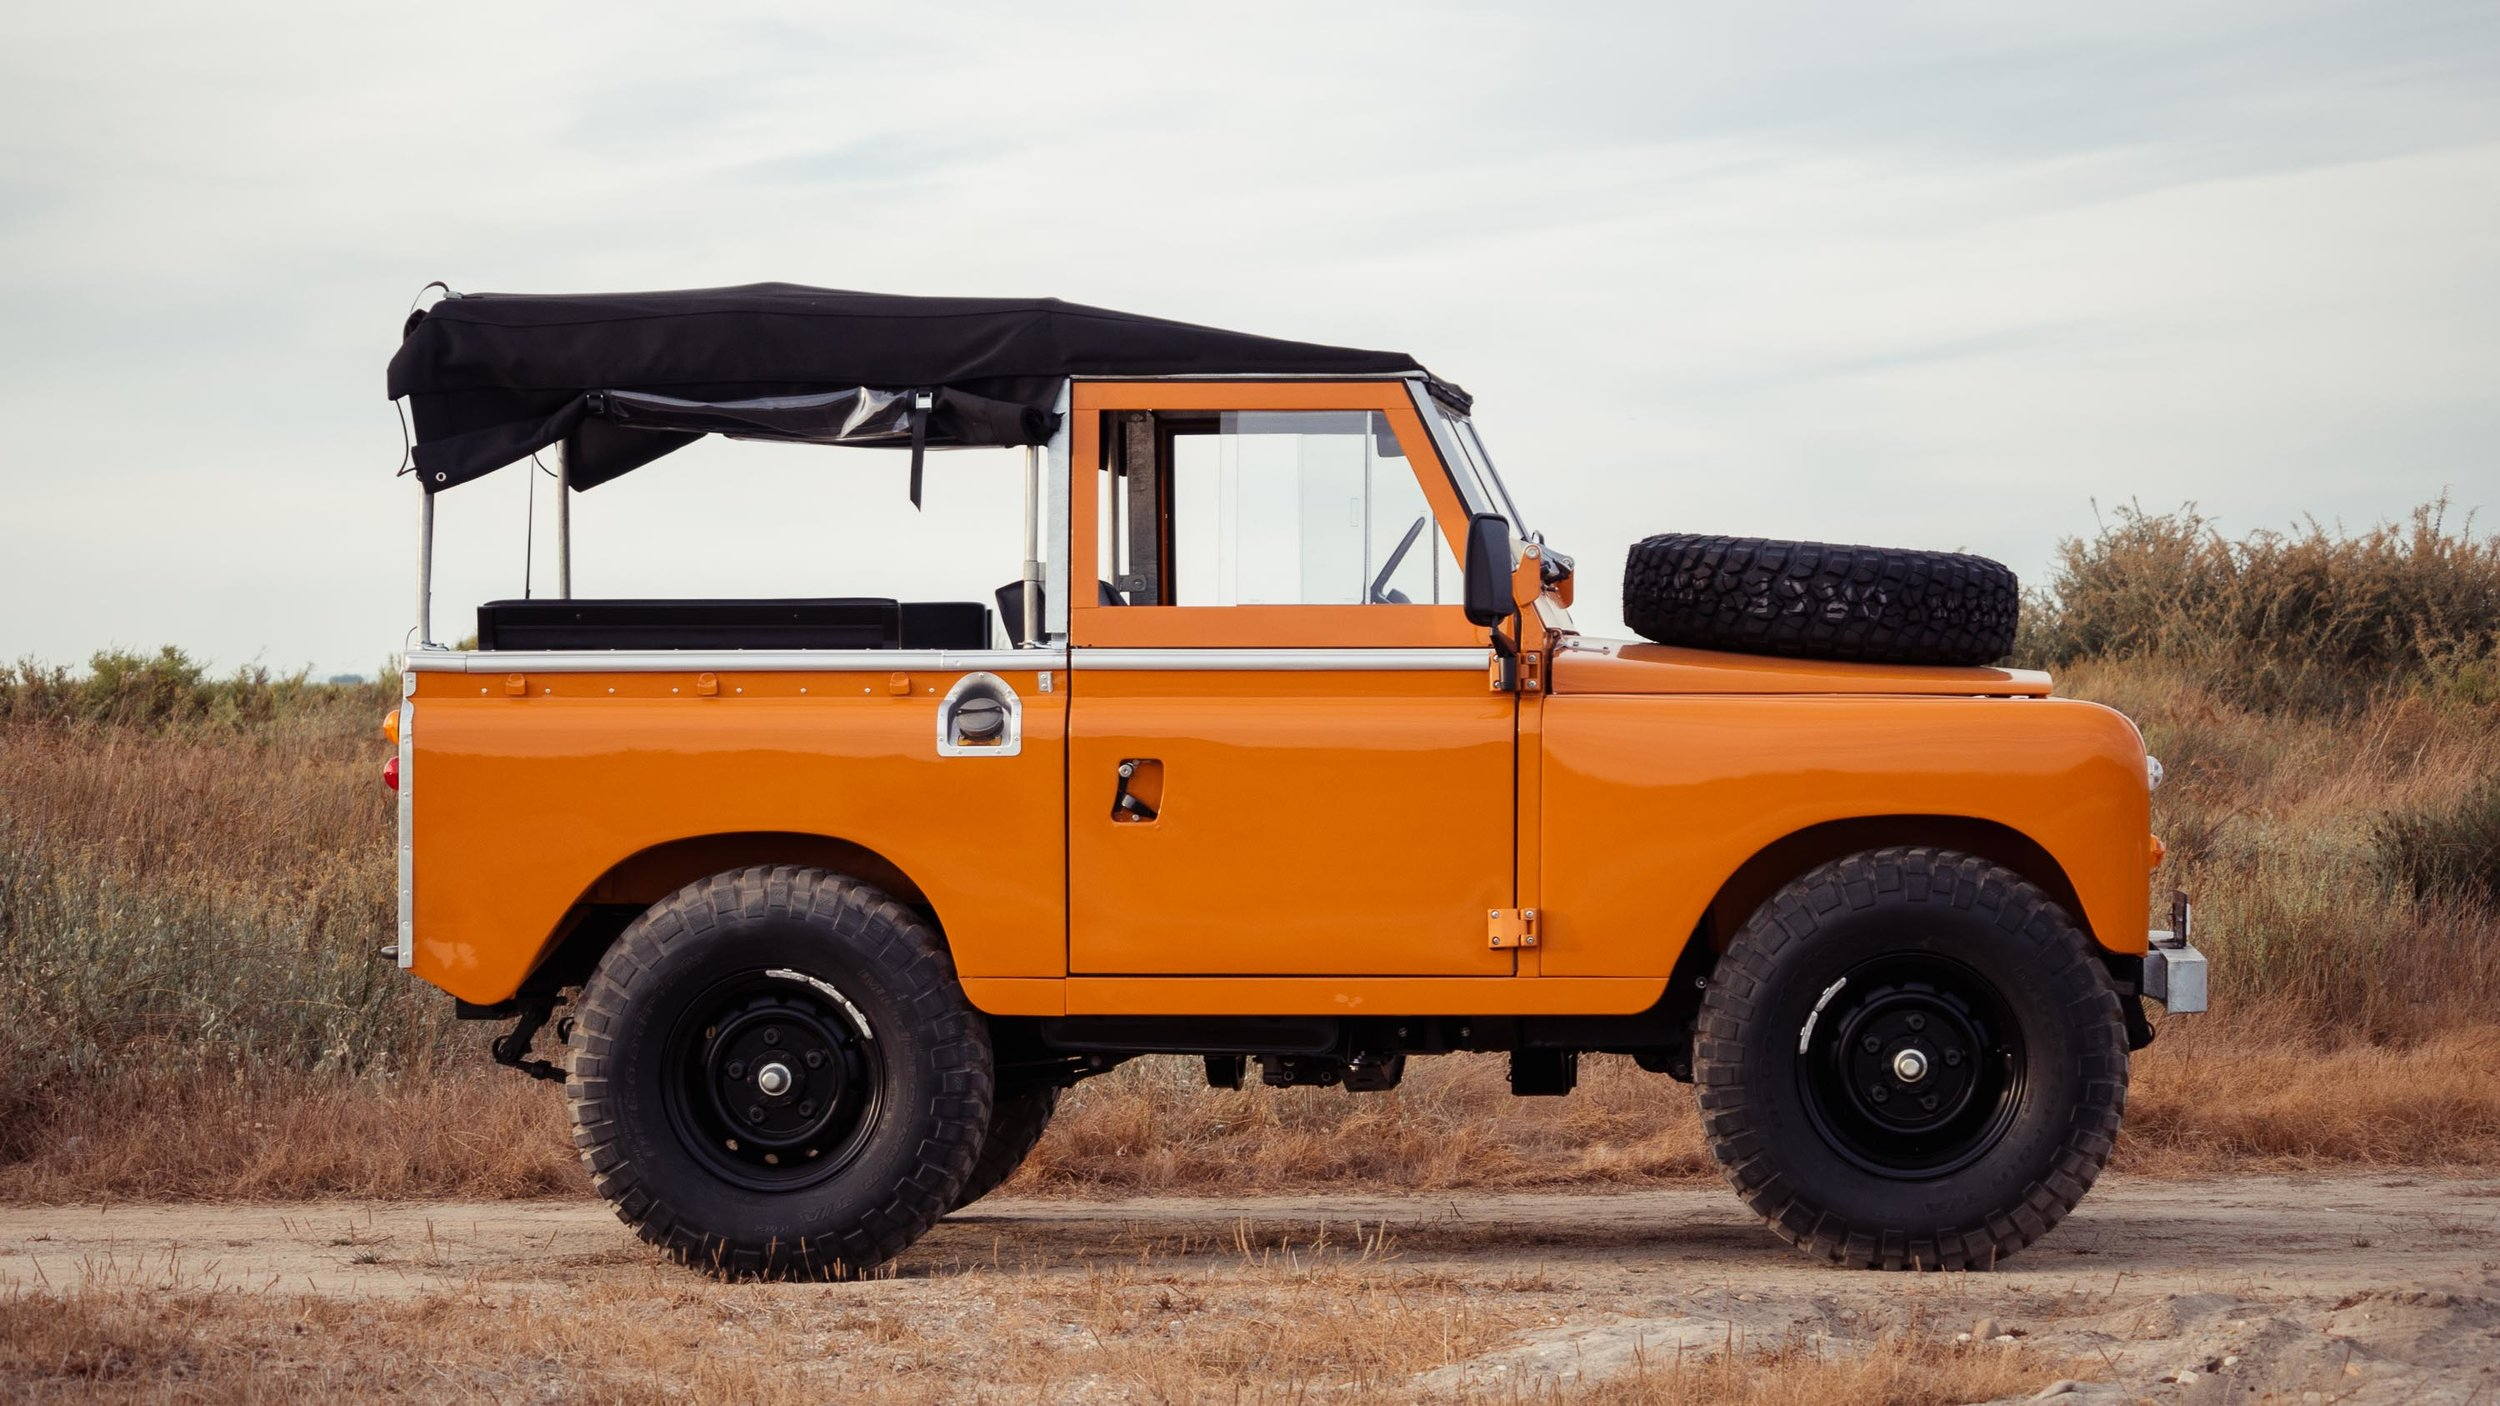 Coolnvintage Land Rover SIII (130 of 137).jpg